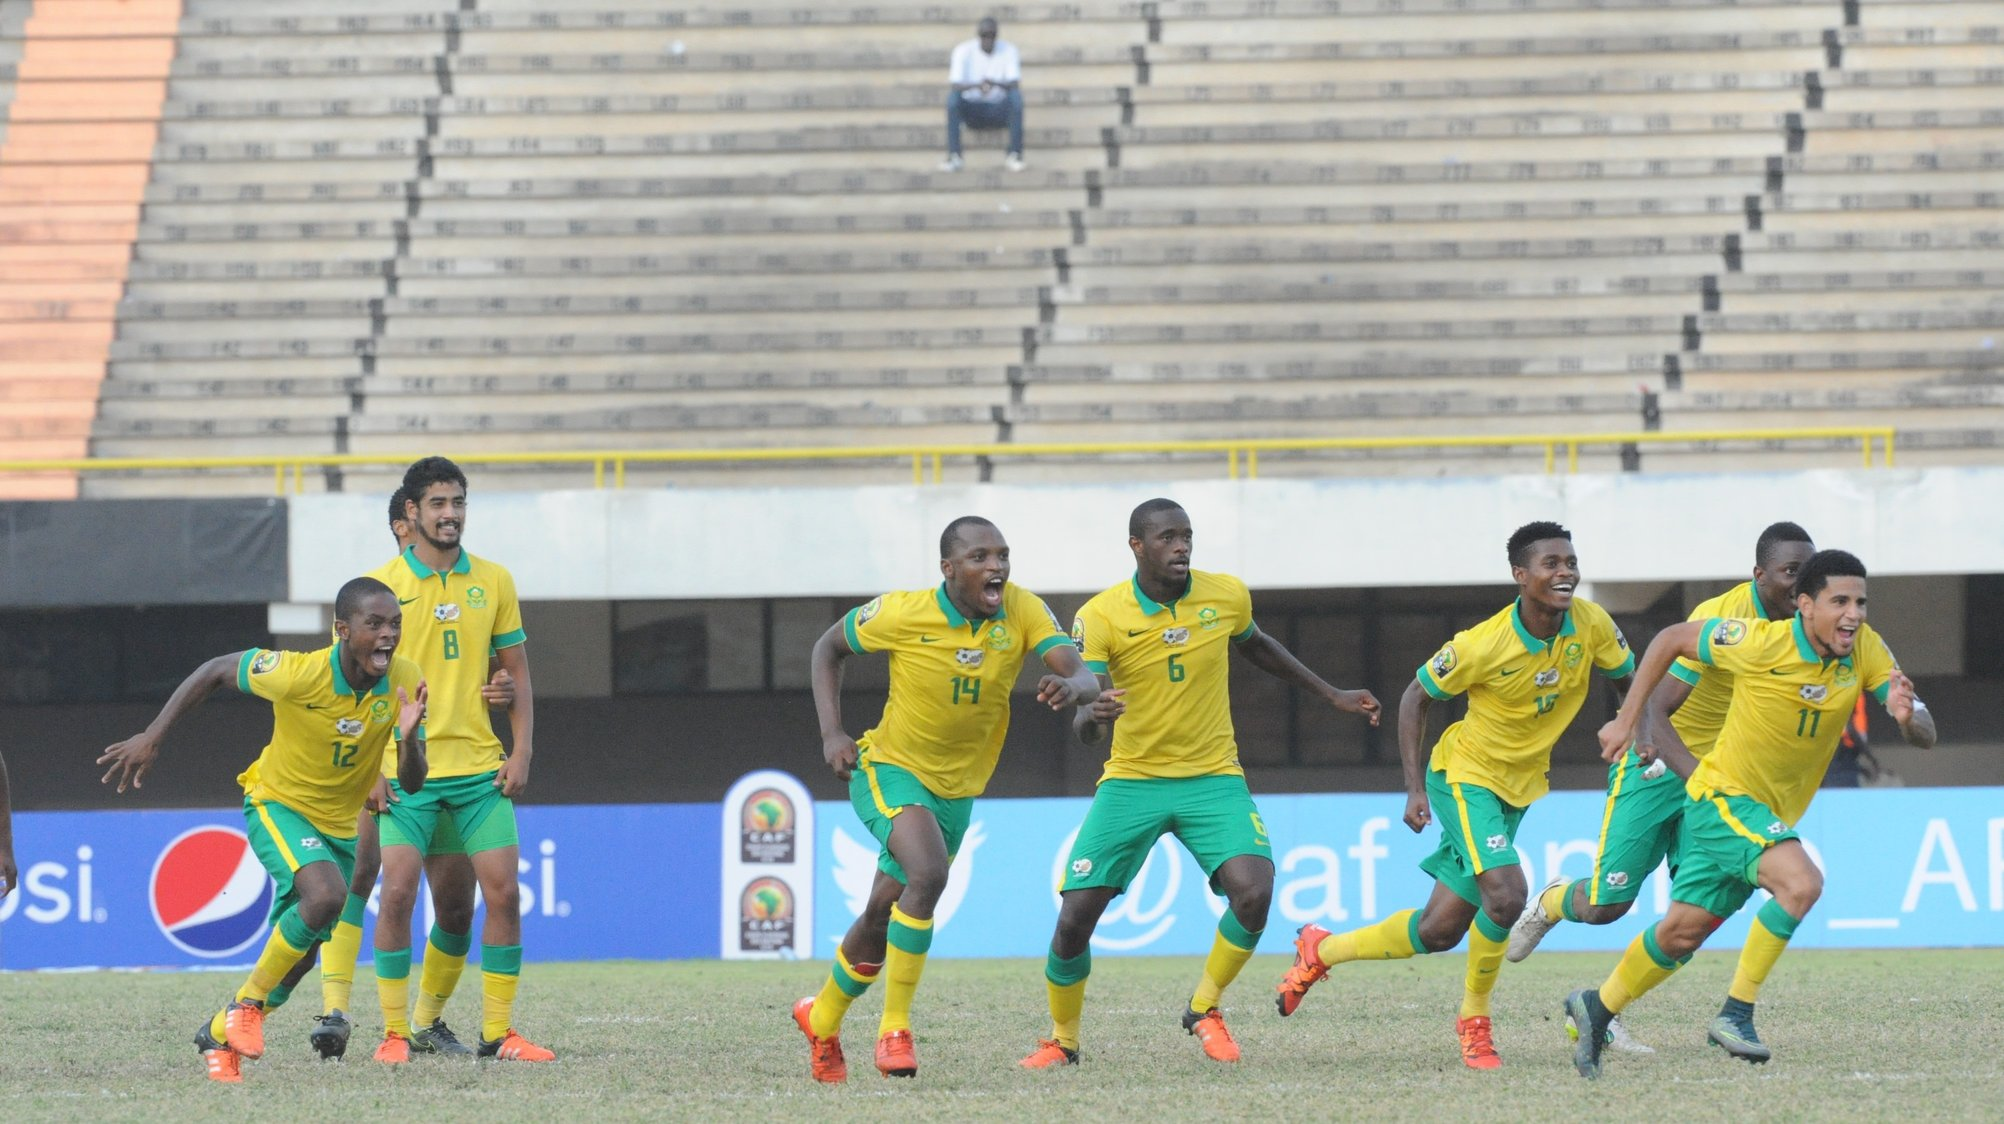 SA youngsters set their sights on Rio after sinking Senegal